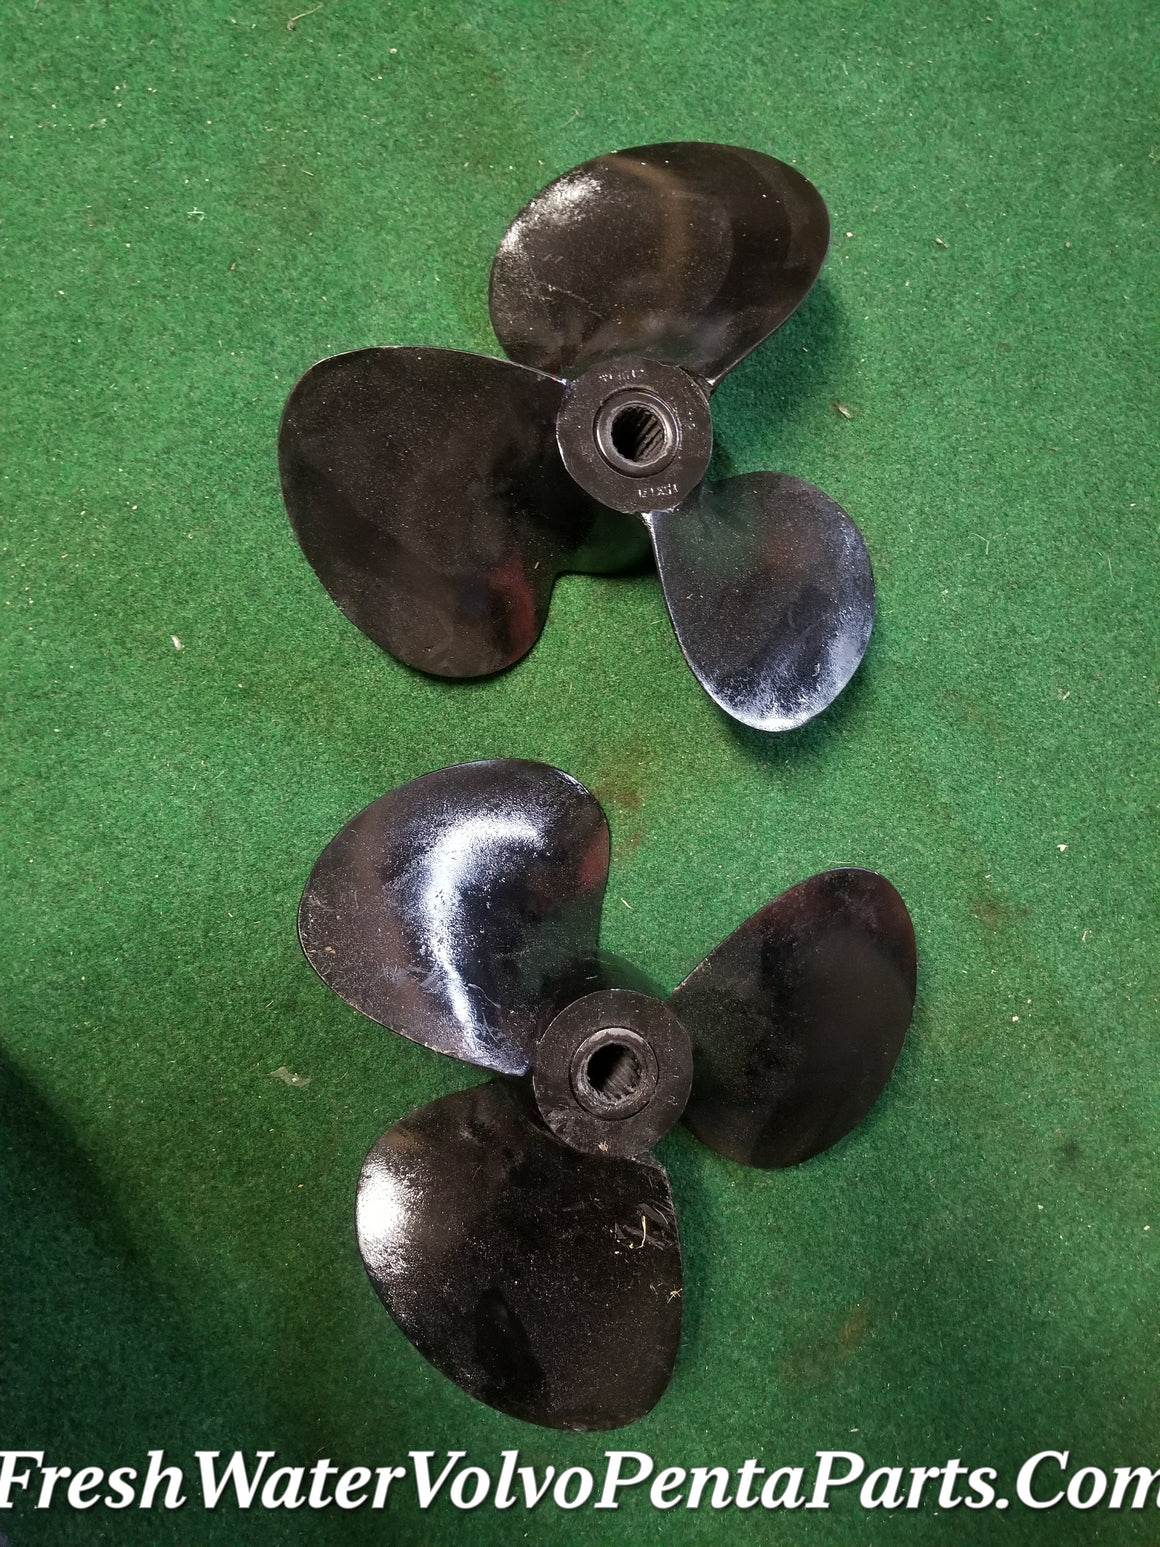 Volvo Penta 15 x 17 L & 15 X 17 R short hub Propellers Left & Right 290 17 spline